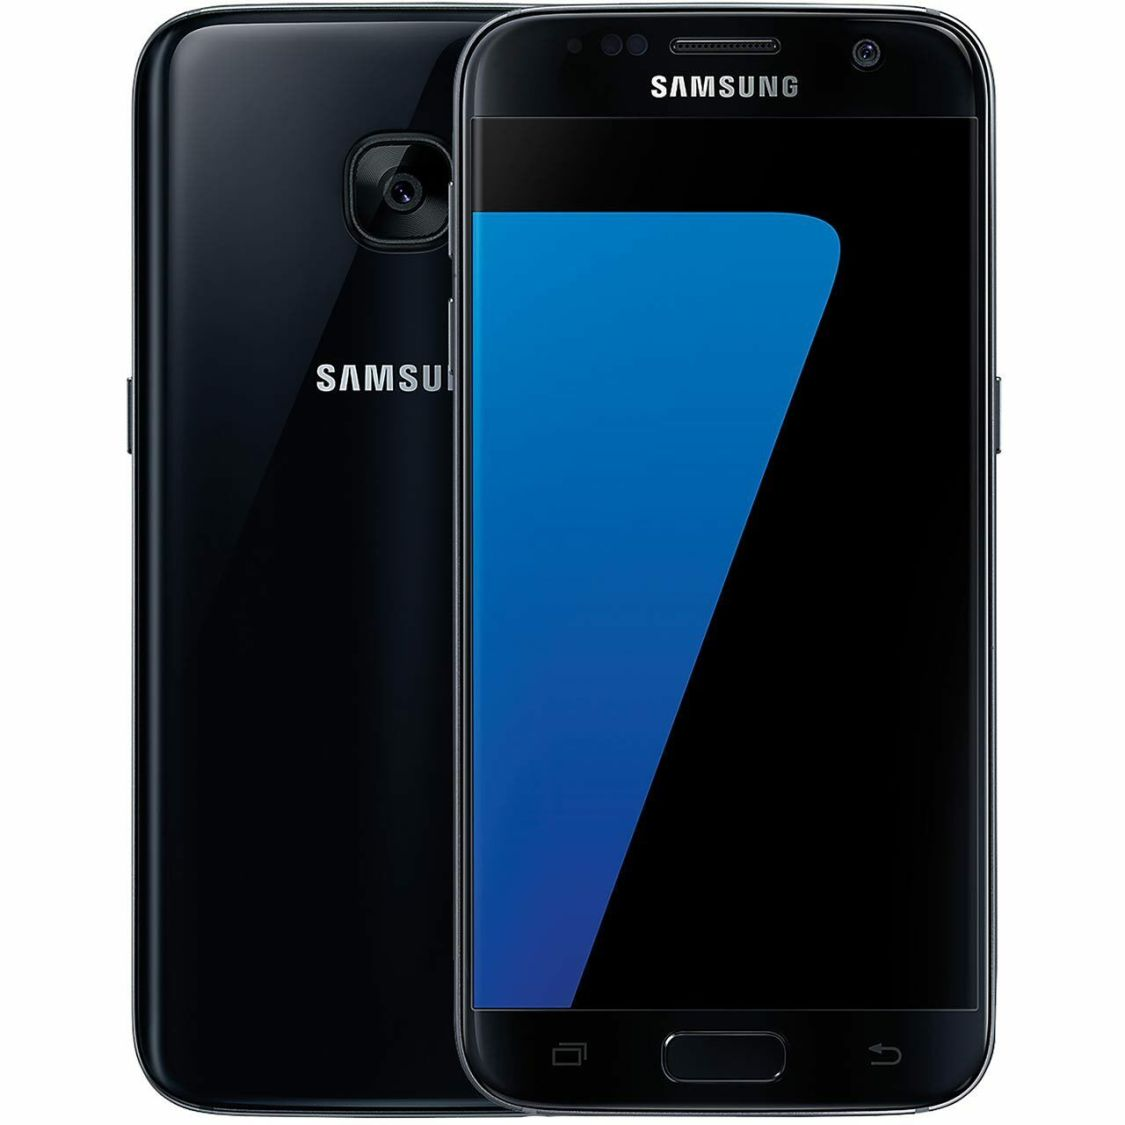 Samsung Galaxy S7 Smartphone 5,1 Zoll Touch-Display 32GB interner Speicher Handy